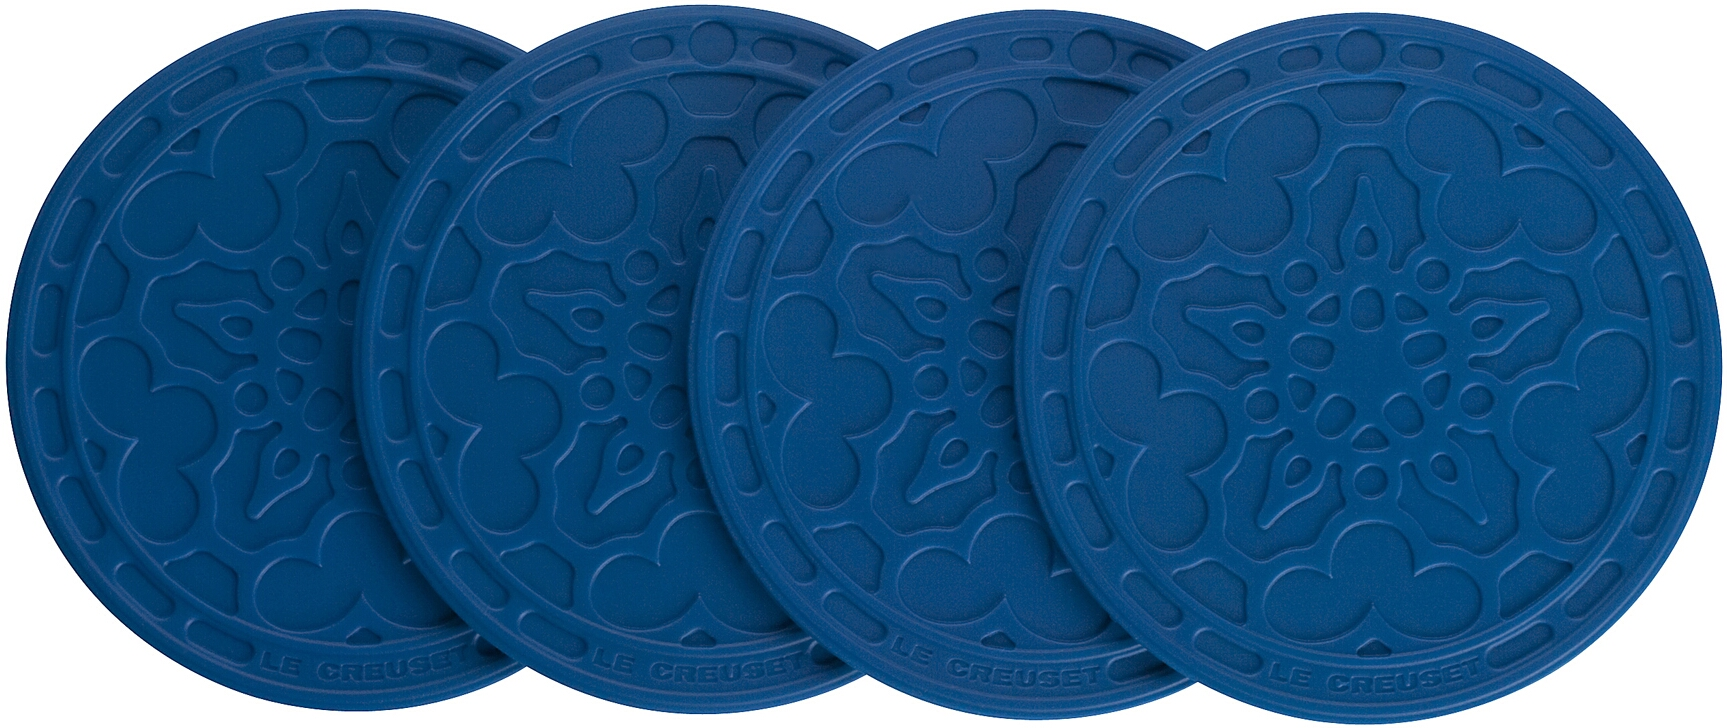 Le Creuset Marseille Blue Silicone French Coaster, Set of 4